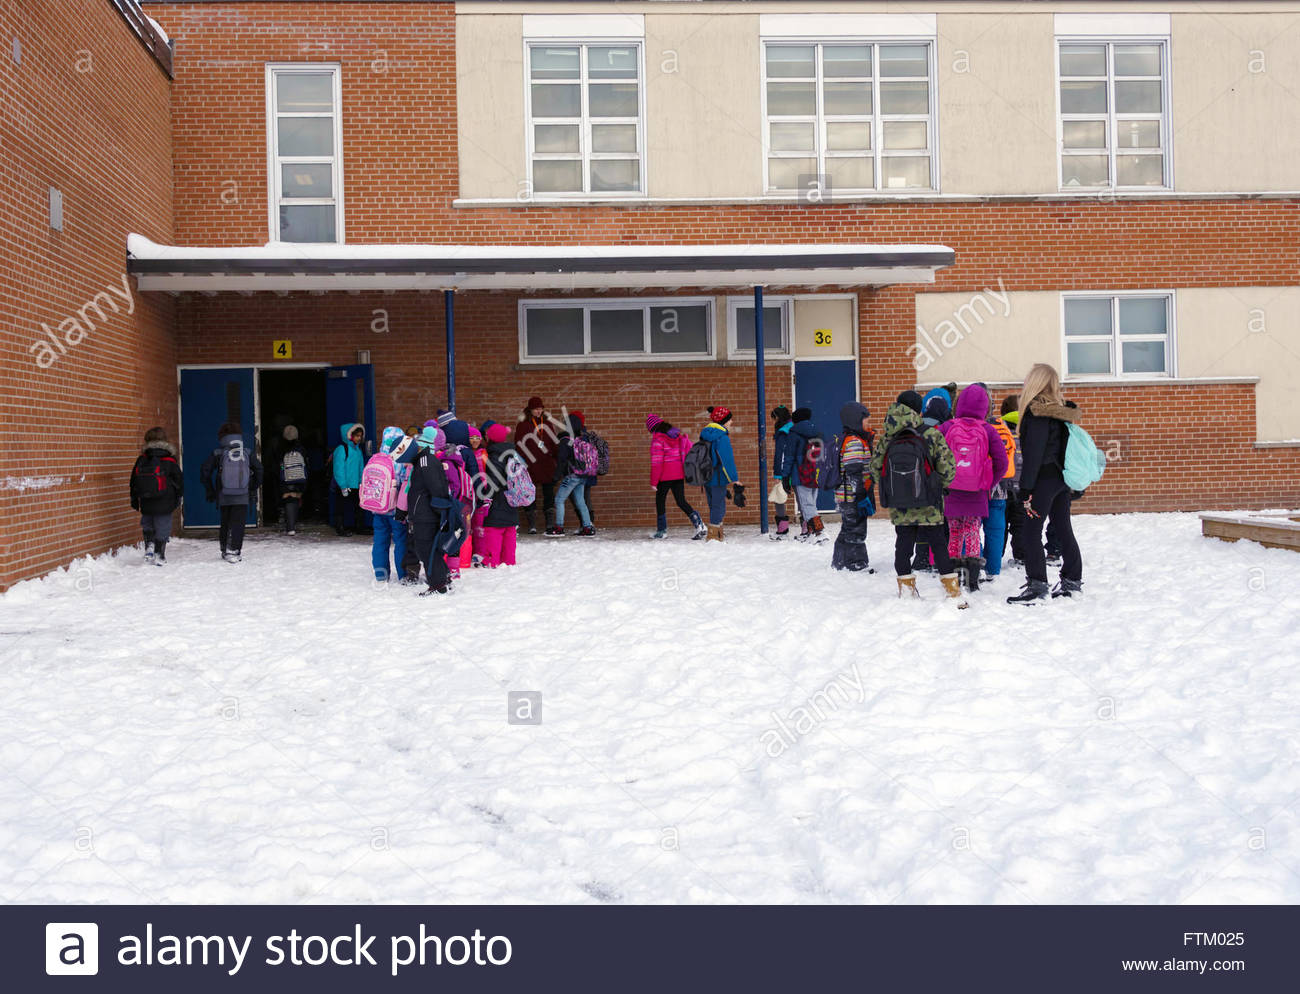 Toronto, Canada, Winter school day, school students waiting about to enter classrooms at a snowy schoolyard. - Stock Image